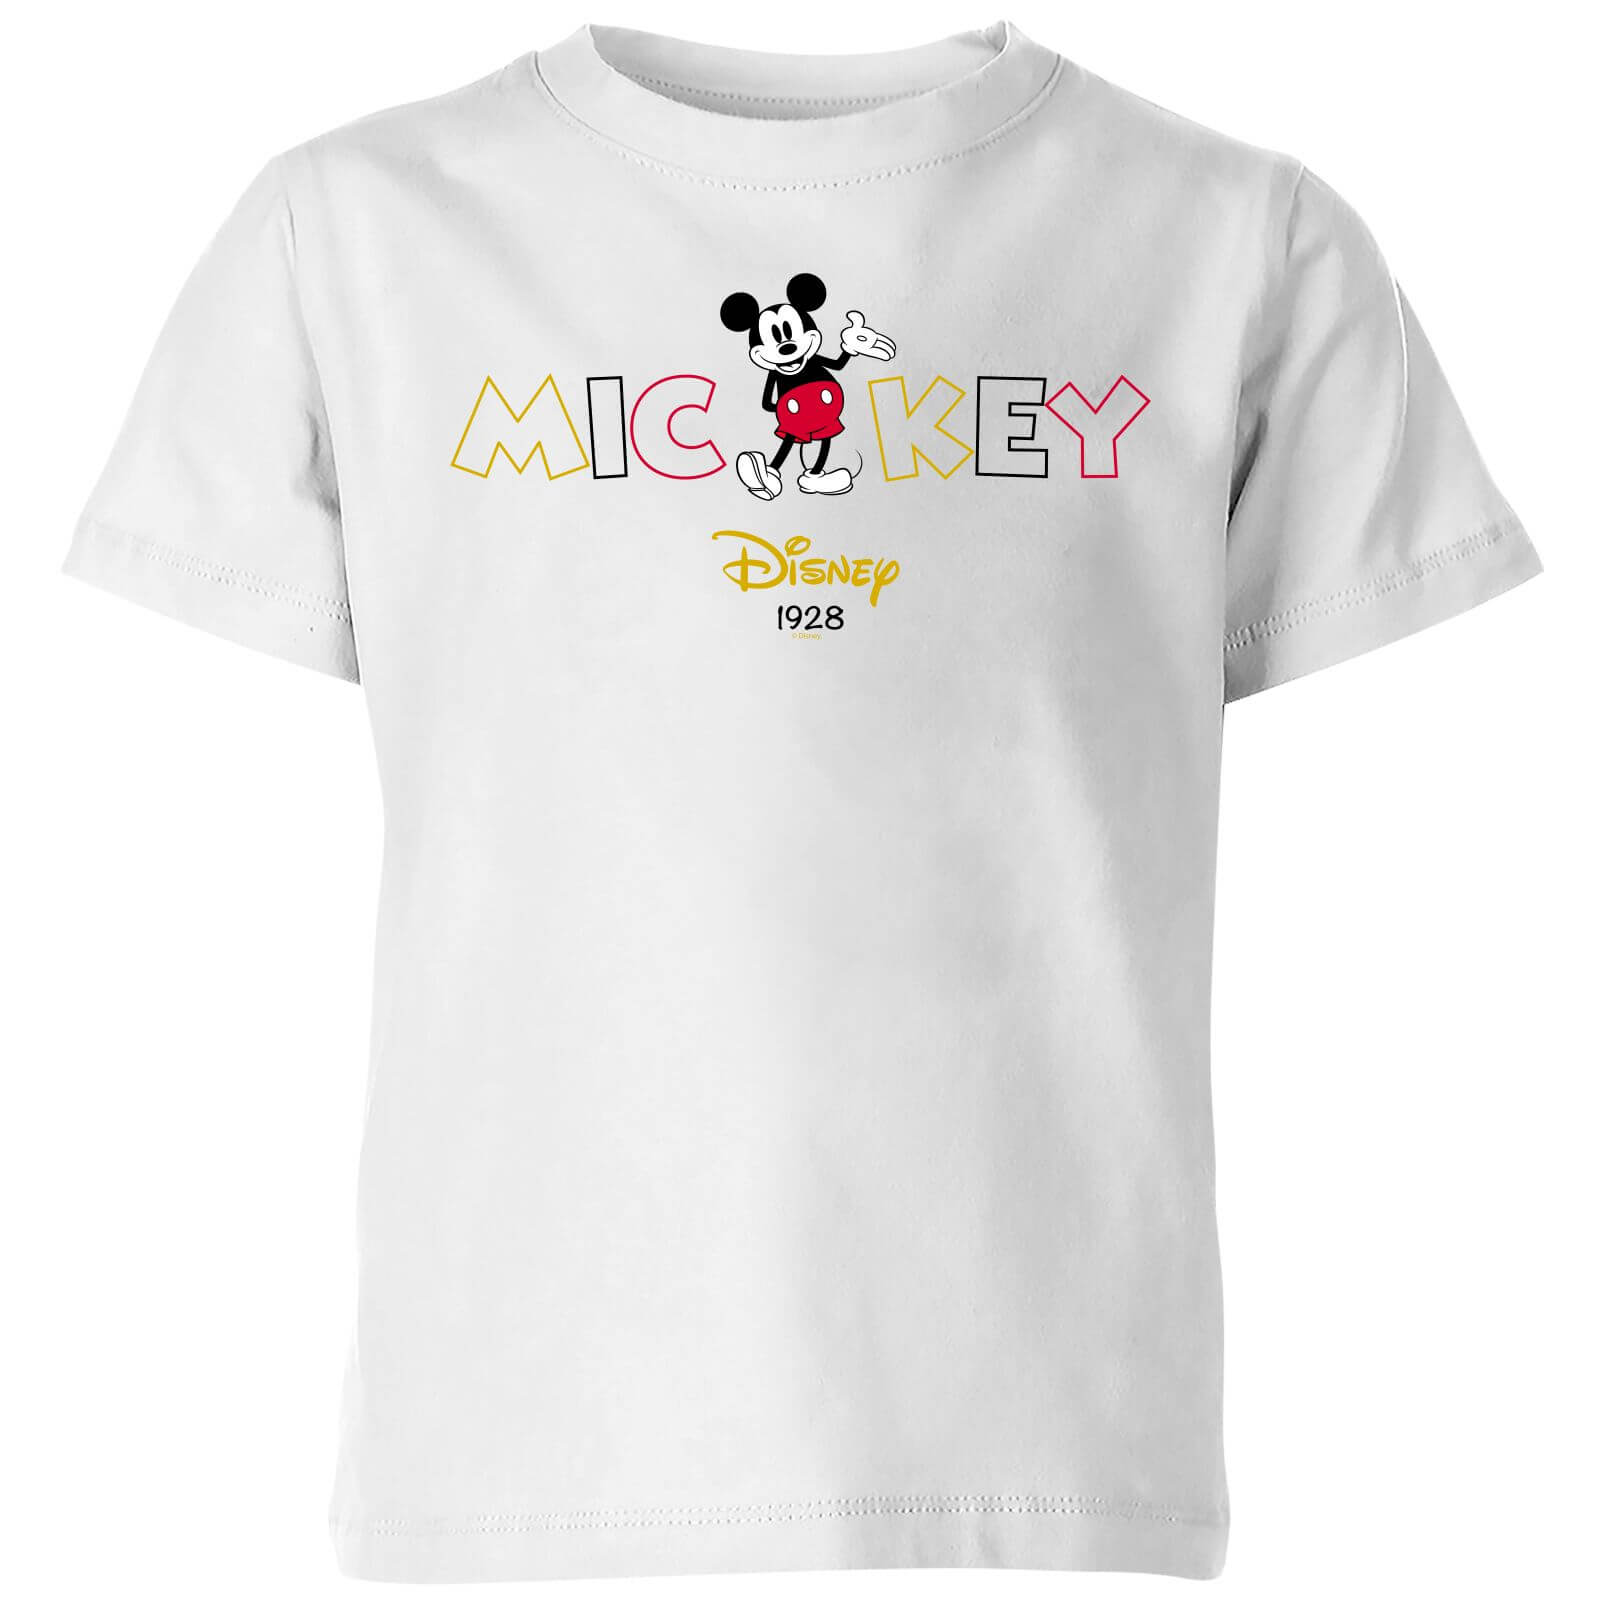 Disney Mickey Mouse Disney Wording Kids' T-Shirt - White - 3-4 años - Blanco de Disney